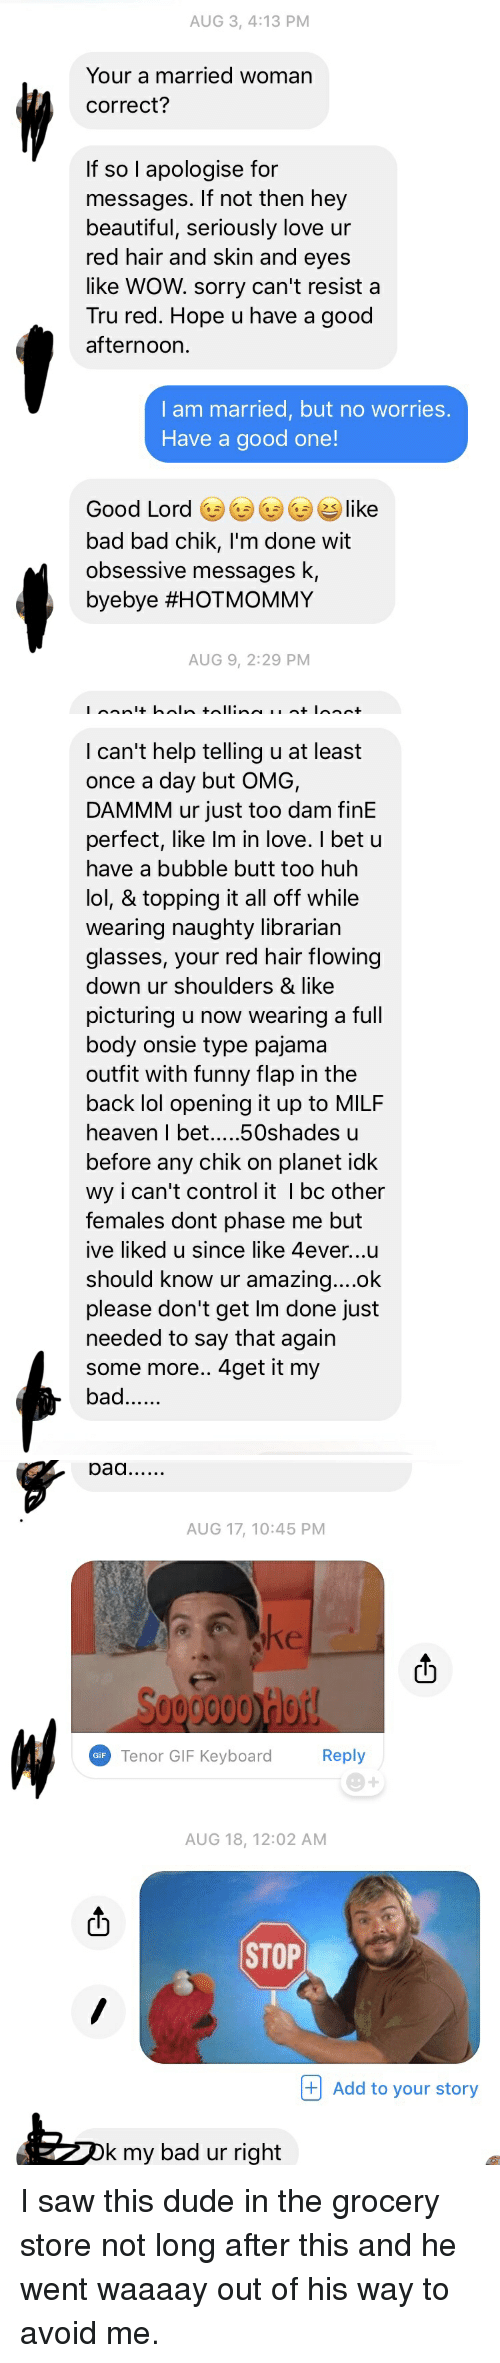 Bad, Beautiful, and Butt: AUG 3, 4:13 PM  Your a married woman  correct?  If so l apologise for  messages. If not then hey  beautiful, seriously love ur  red hair and skin and eyes  like WOW. sorry can't resist a  Tru red. Hope u have a good  afternoon.  I am married, but no worries.  Have a good one!  Good Lord ㊧㊧GD like  bad bad chik, I'm done wit  obsessive messages k,  byebye #HOTMOMMY  AUG 9, 2:29 PM   I can't help telling u at least  once a day but OMG,  DAMMM ur just too dam finE  perfect, like Im in love. I bet u  have a bubble butt too huh  lol, & topping it all off while  wearing naughty librarian  glasses, your red hair flowing  down ur shoulders & like  picturing u now wearing a full  body onsie type pajama  outfit with funny flap in the  back lol opening it up to MILF  before any chik on planet idk  wy i can't control it I bc other  Temales dont phase me but  ive liked u since like 4ever...u  should know ur amazina....ok  please don't get lm done just  needed to say that agairn  some more.. 4get it my  bad   AUG 17, 10:45 PM  ct  0000 Hot  Tenor GIF Kevboard  Reply  GiF  AUG 18, 12:02 AM  STOP  + Add to your story  k my bad ur right I saw this dude in the grocery store not long after this and he went waaaay out of his way to avoid me.